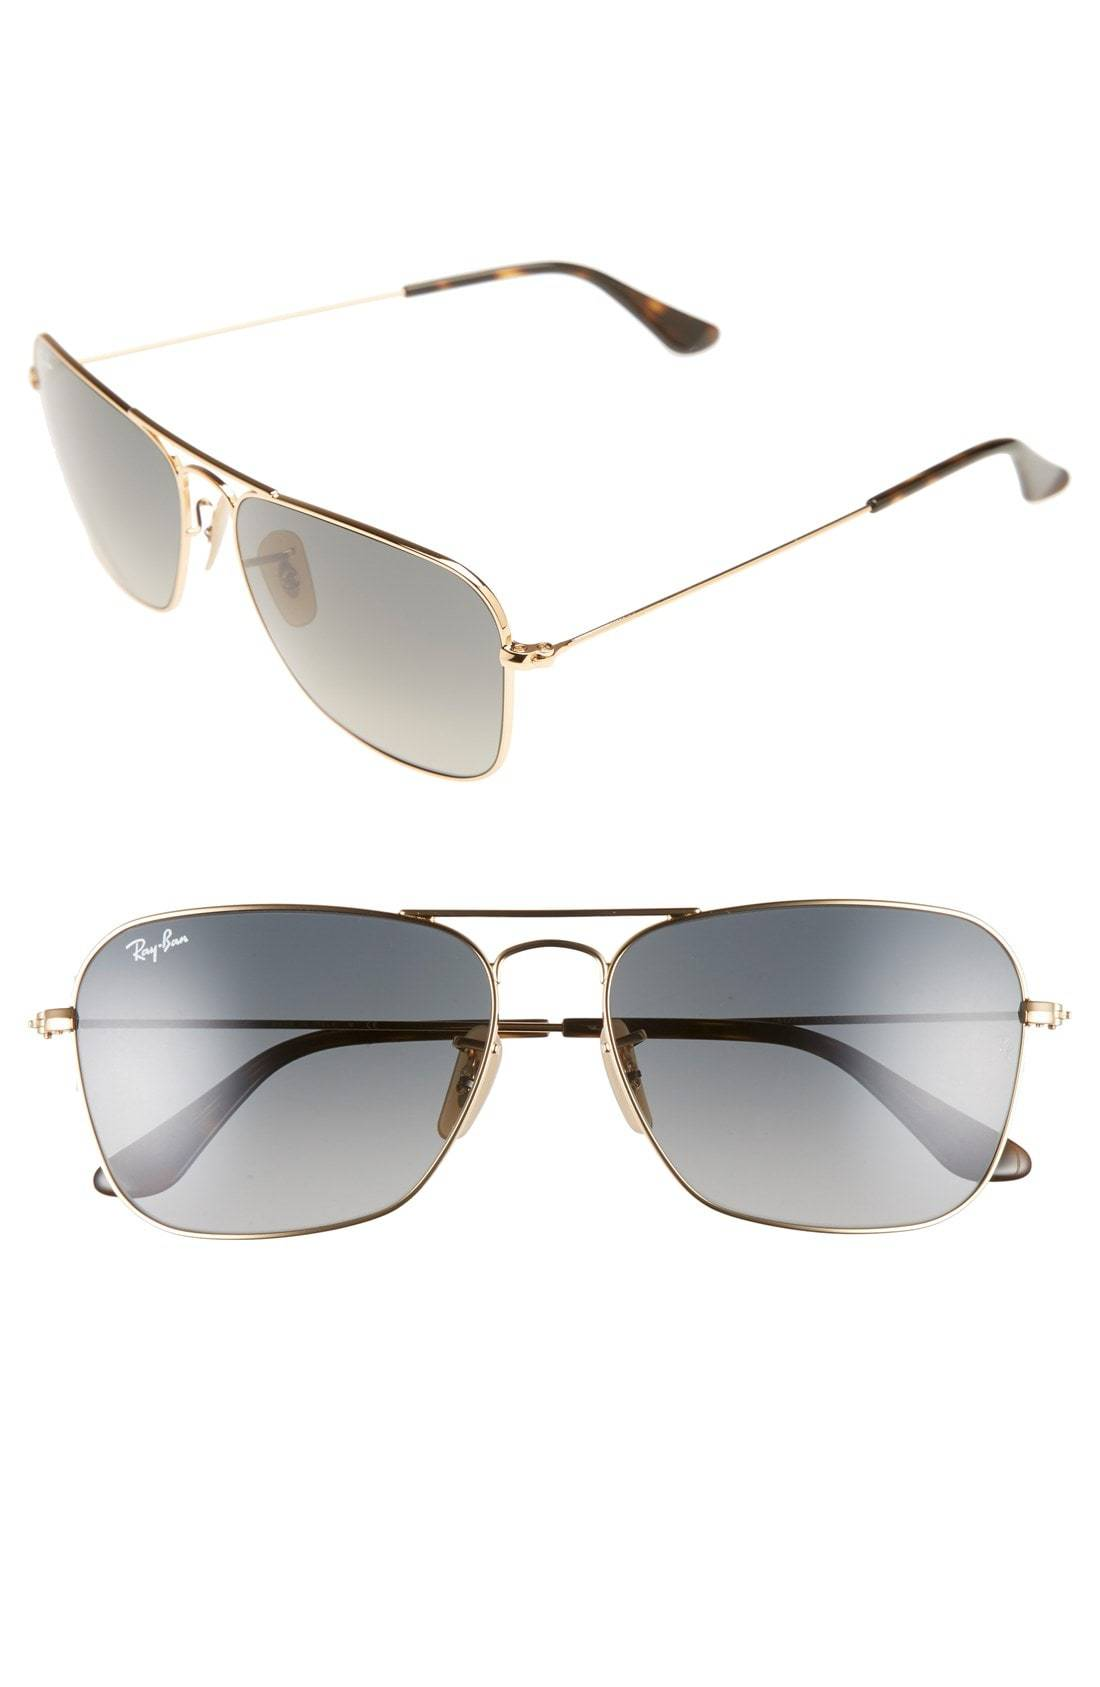 Ray-Ban Caravan 58mm Aviator Sunglasses